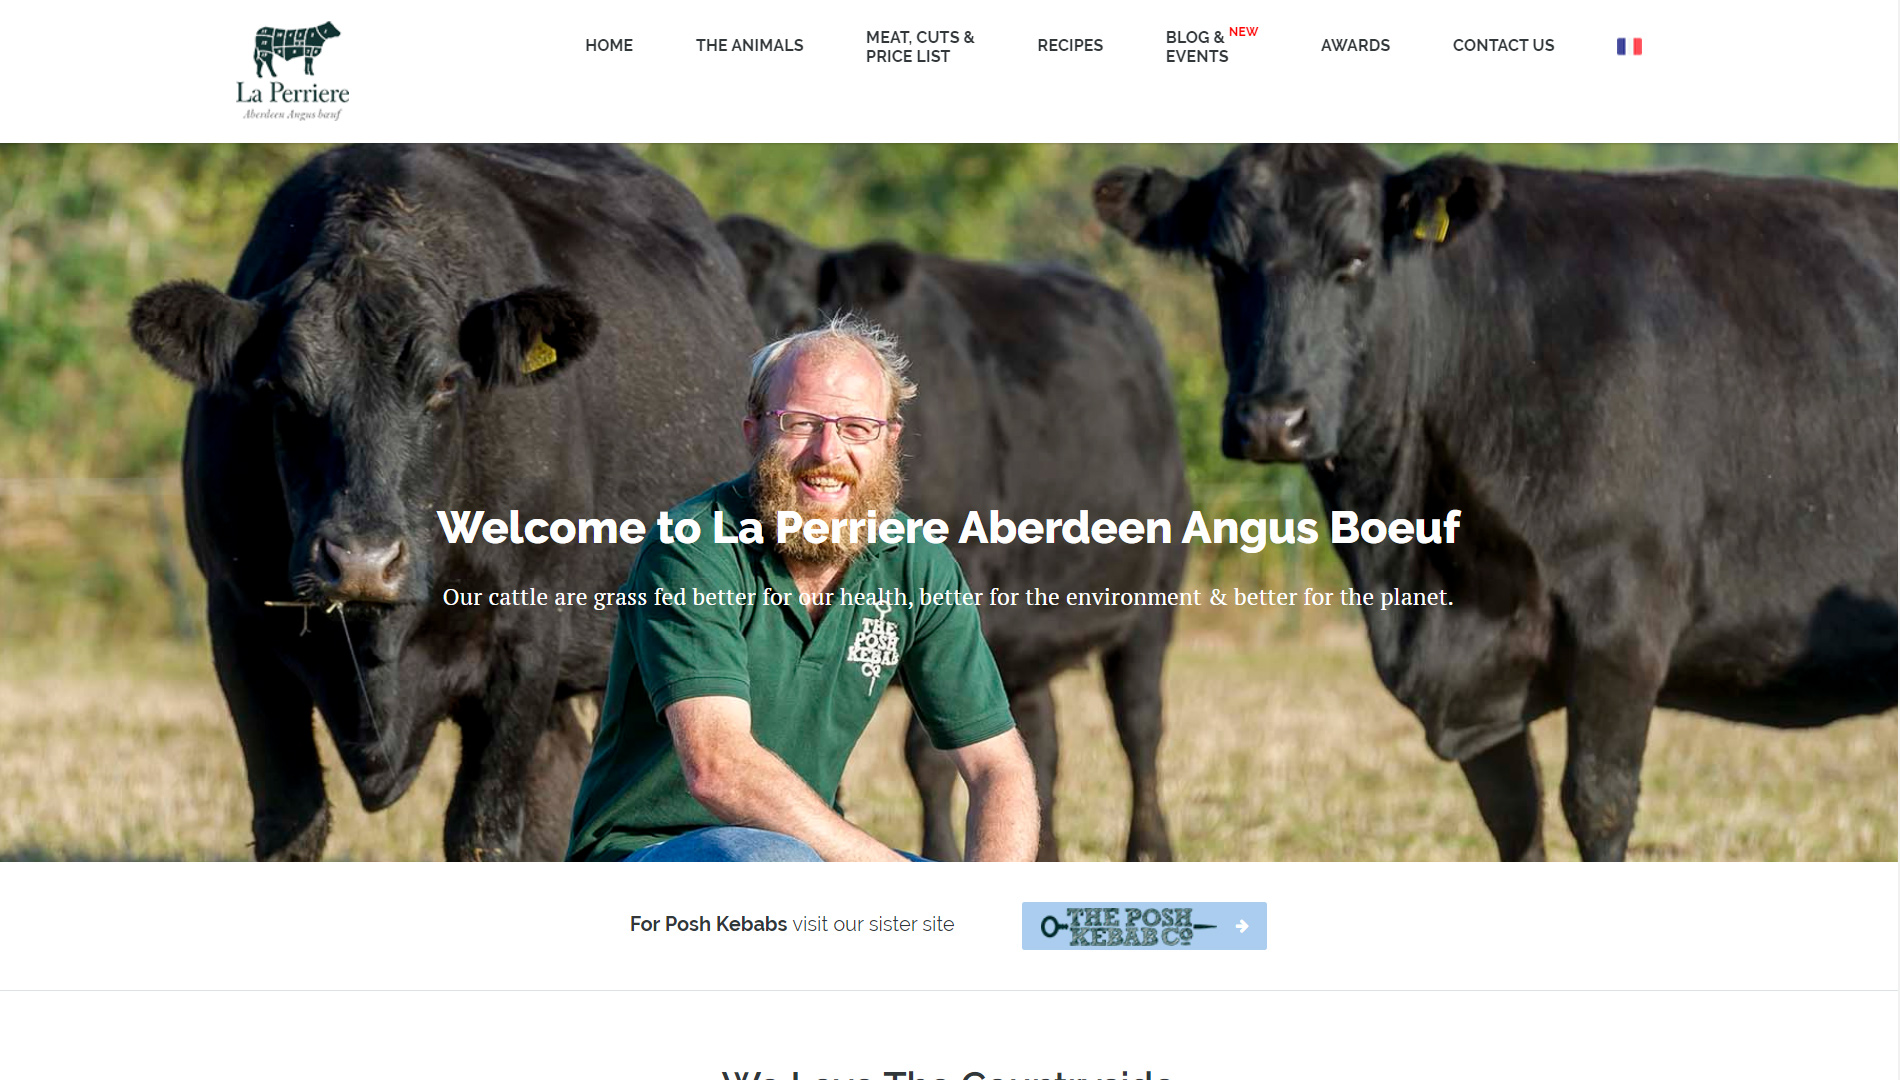 La Perriere Aberdeen Angus Boeuf